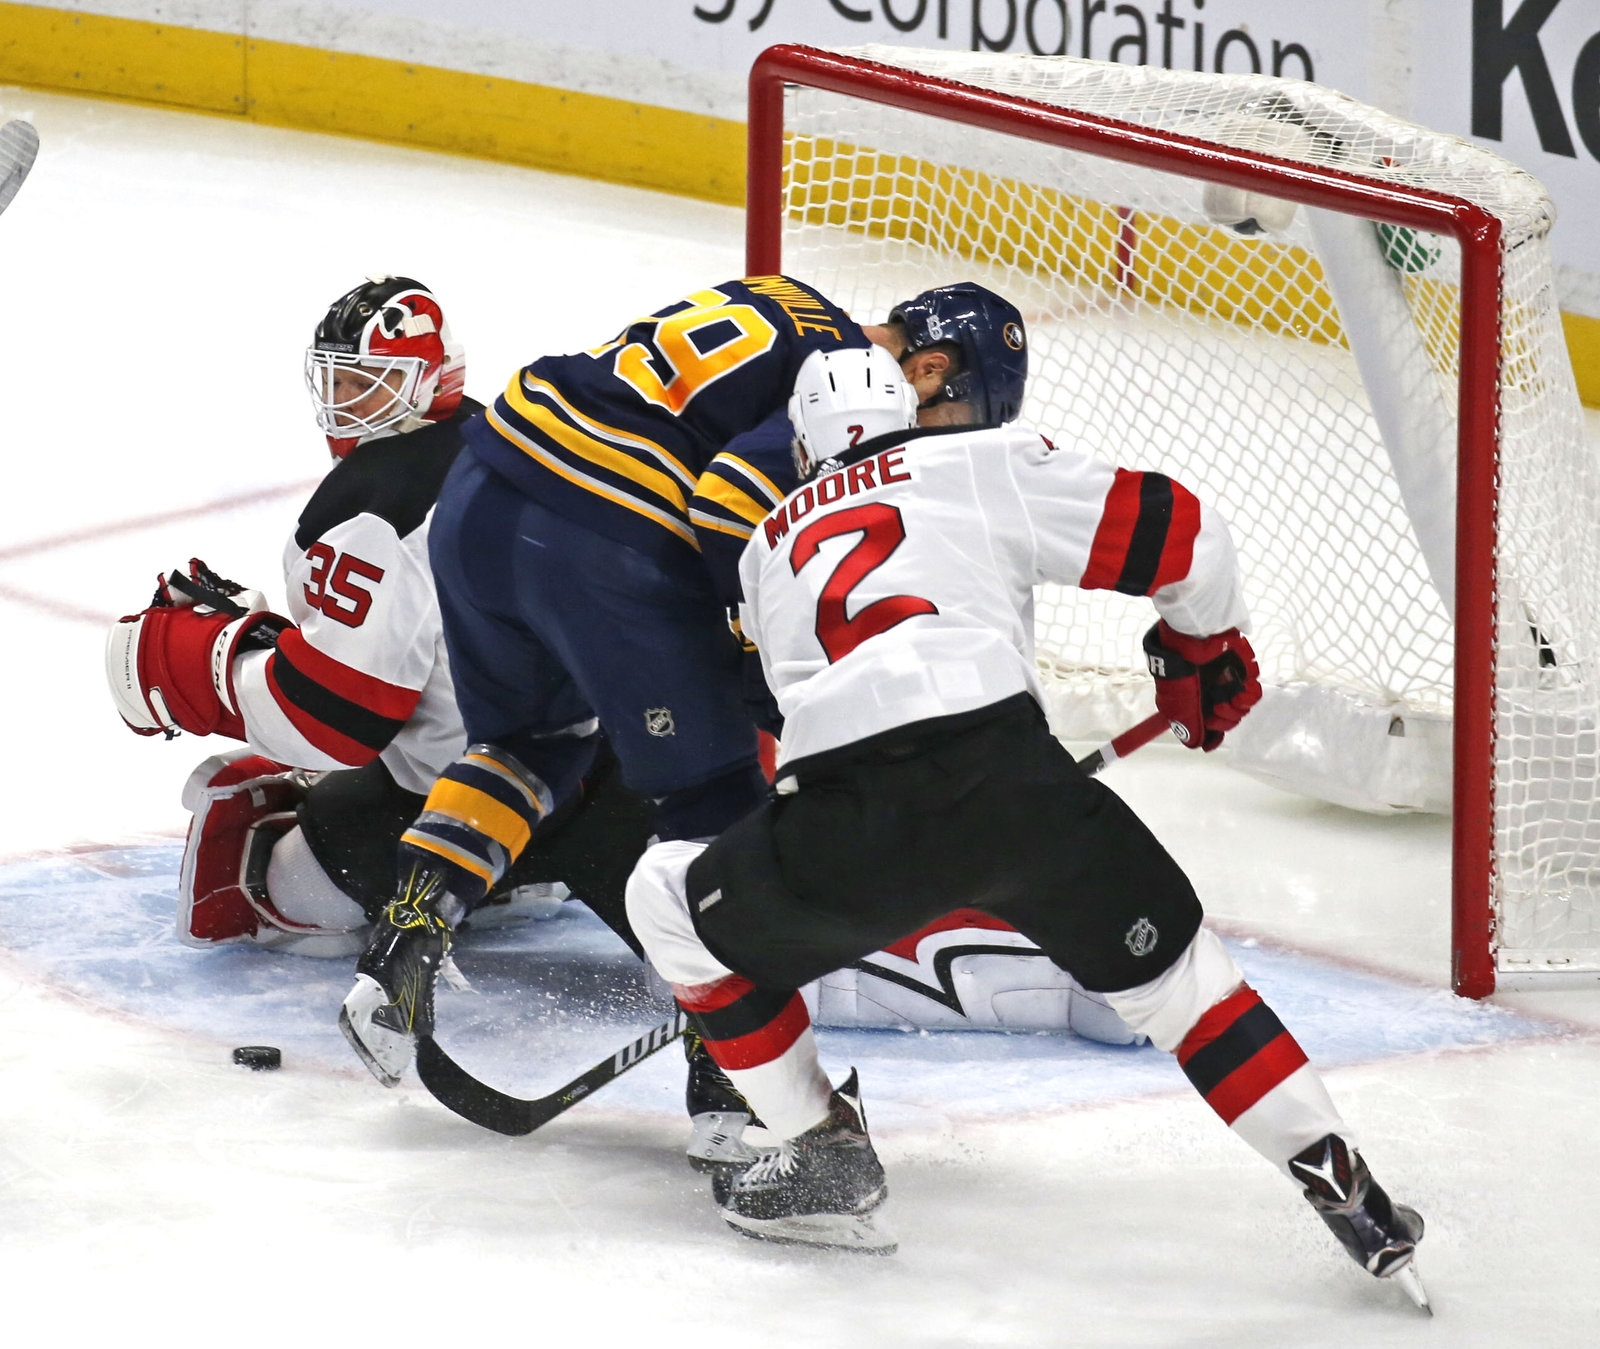 Buffalo's Jason Pominville (29) finds himself in a missed oppurtunity near the N.J. net as NJ's John Moore (2) clears the puck out from under him.